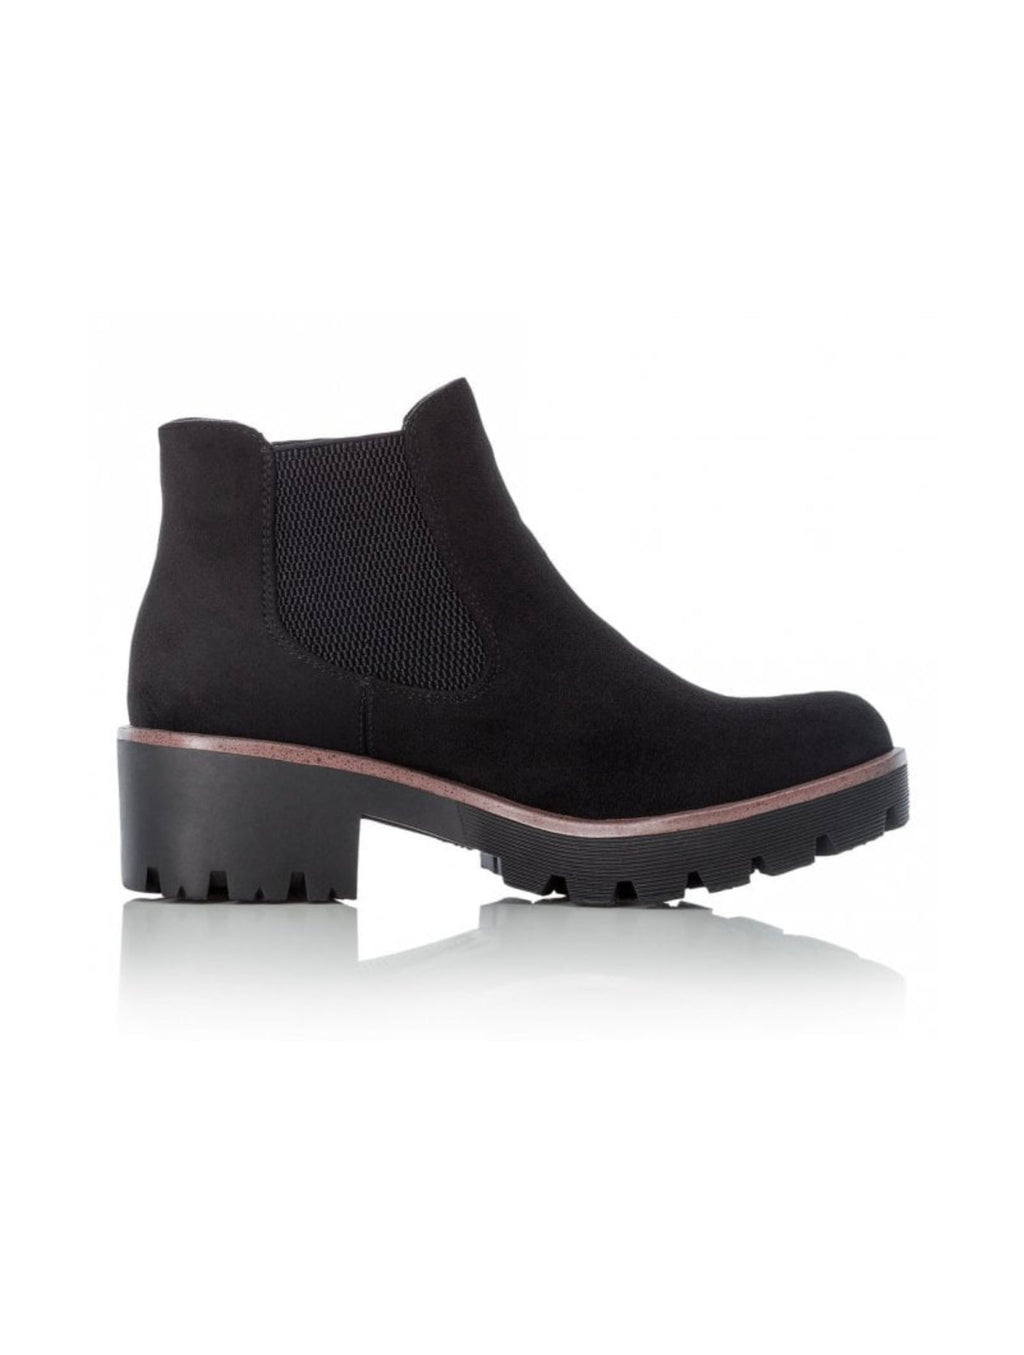 Rieker Amalia Boot in Black